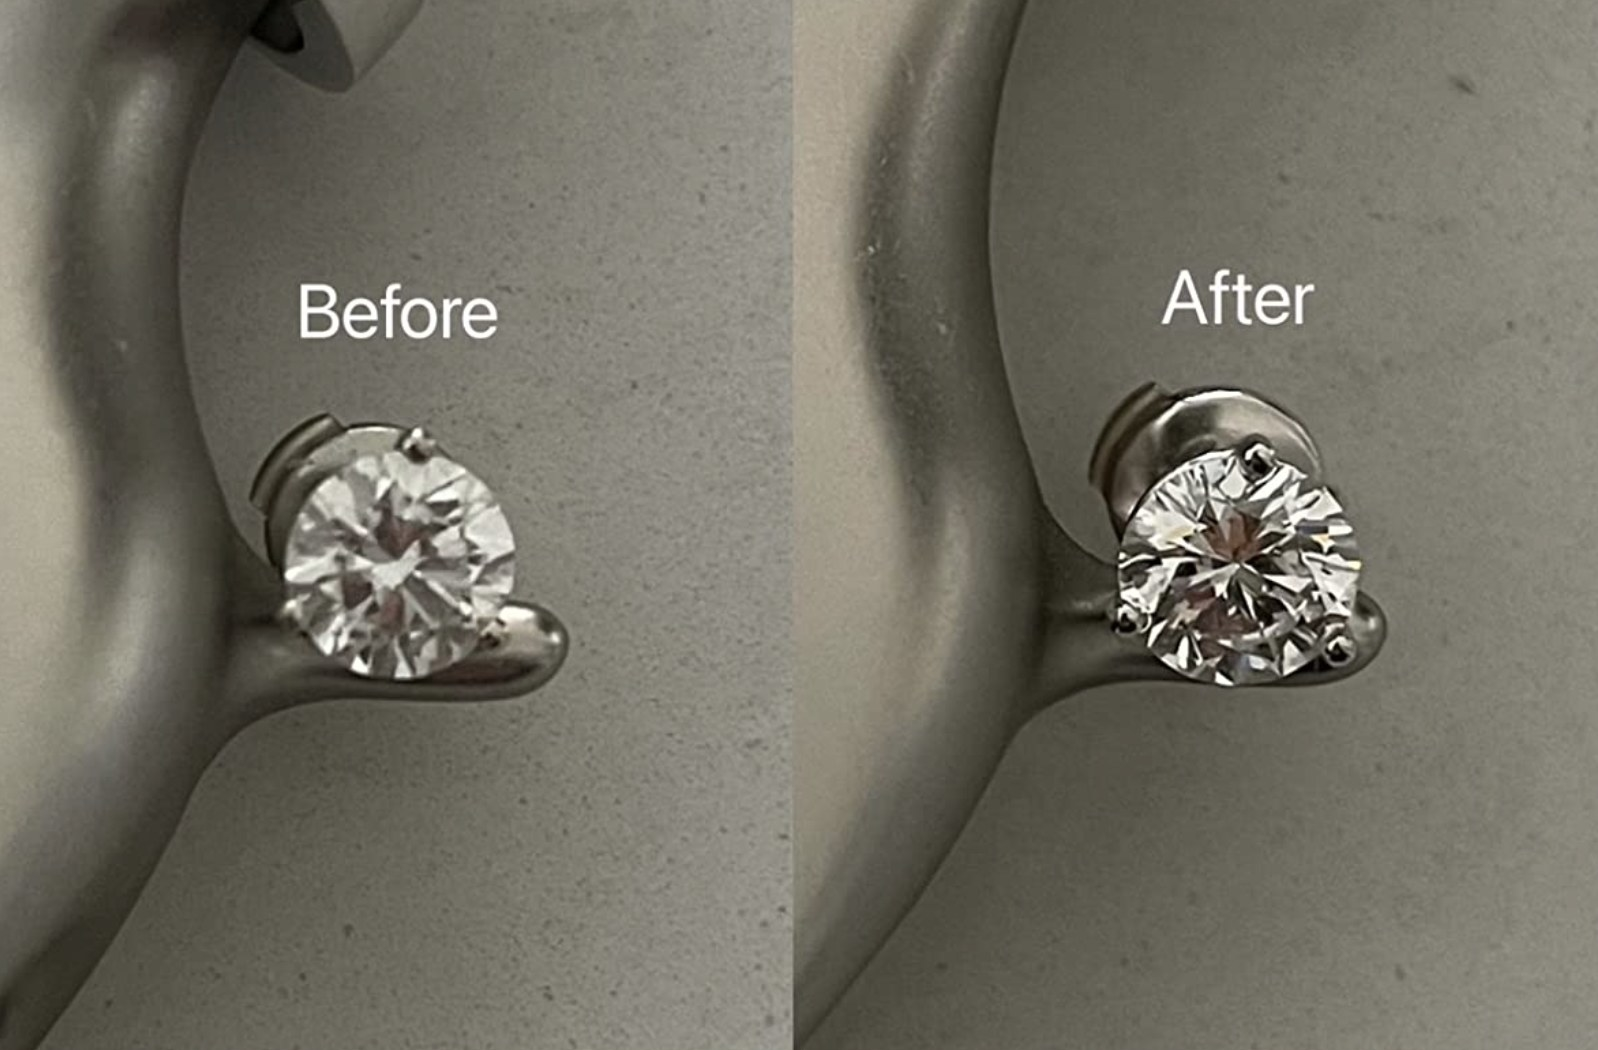 reviewer photo showing their diamond before and after using the cleaning pen